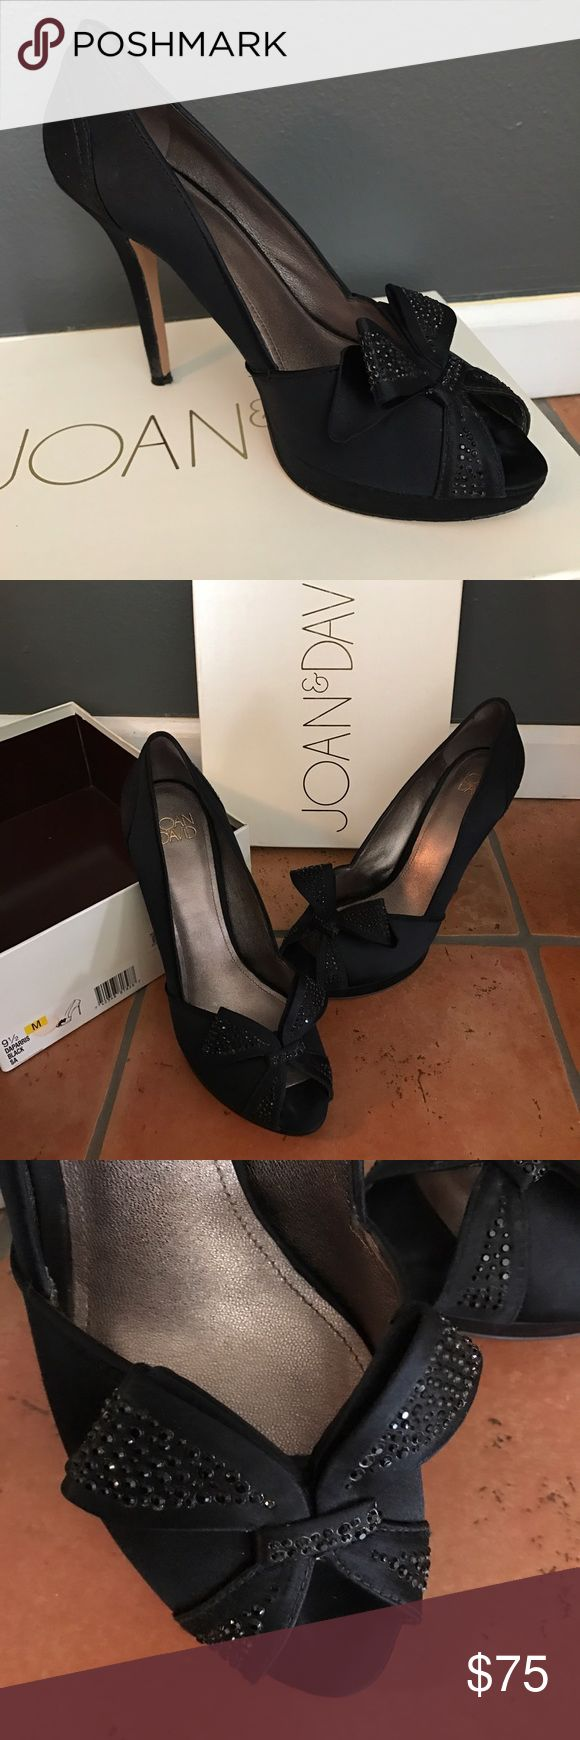 Selling this Joan & David | Daparris Satin Heels 9.5m on Poshmark! My username is: evensenek. #shopmycloset #poshmark #fashion #shopping #style #forsale #Joan & David #Shoes